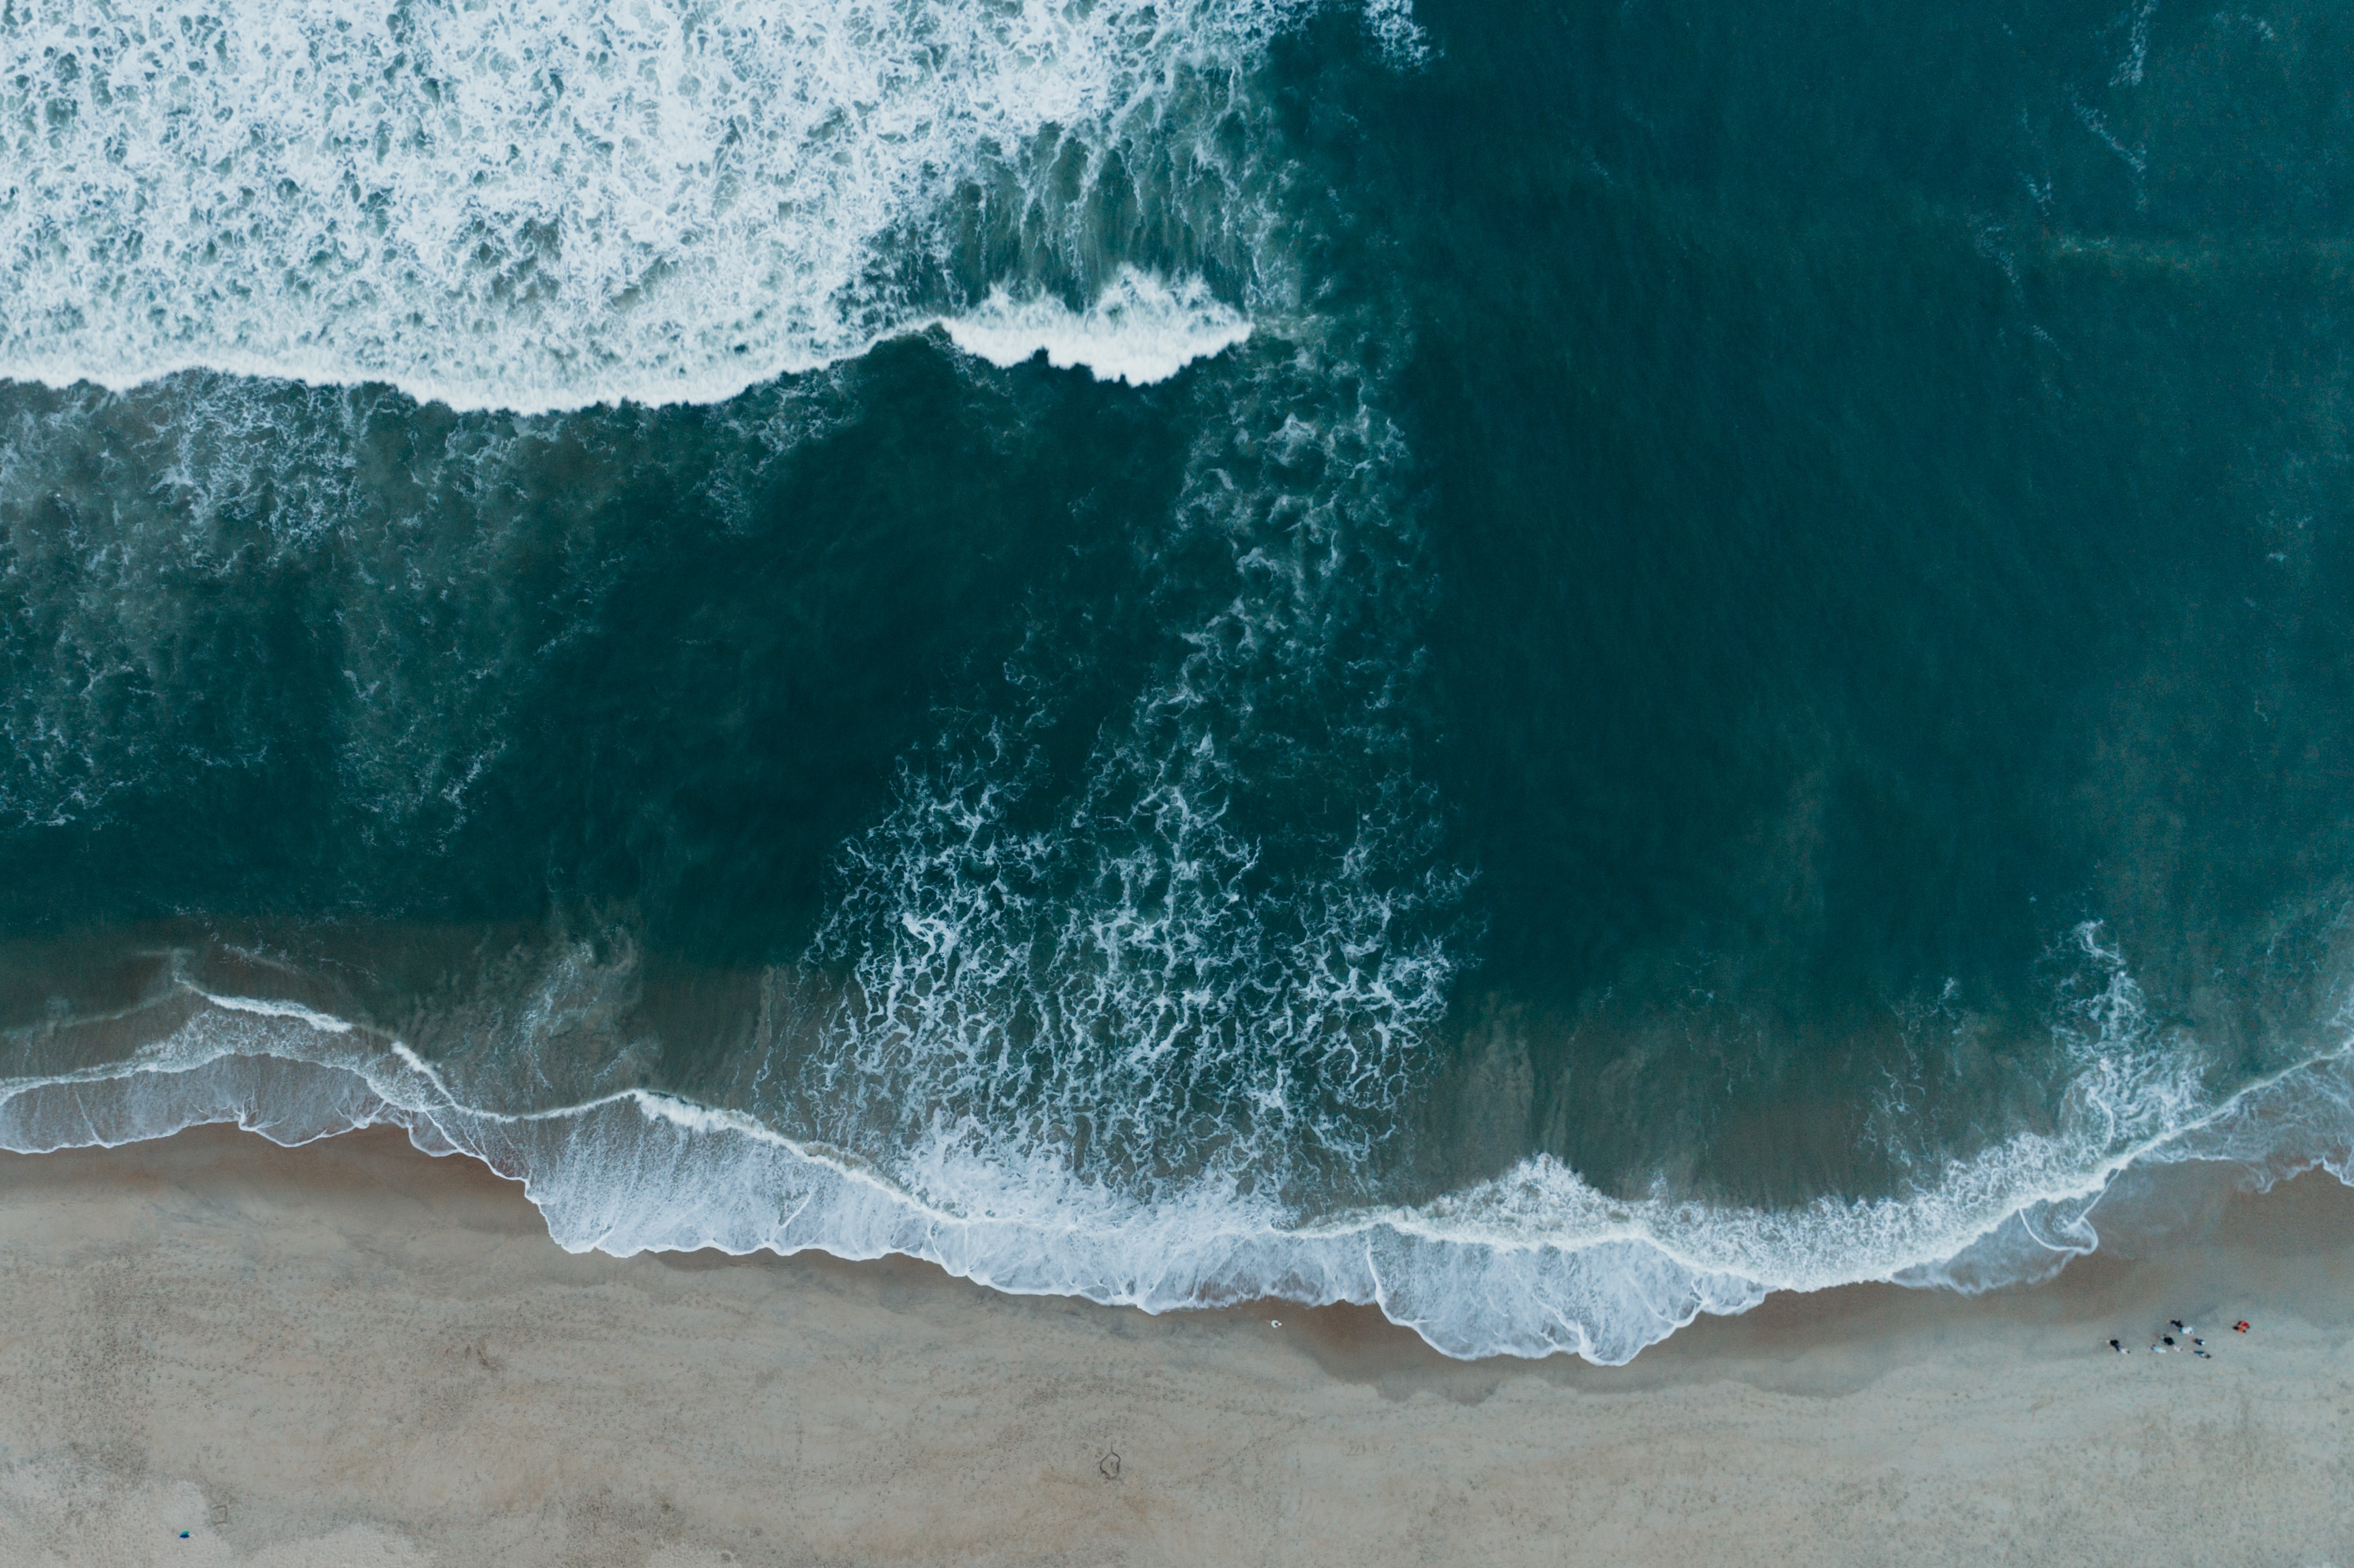 Drone view of the ocean washing on the sand beach shore at Nags Head, North Carolina, United States